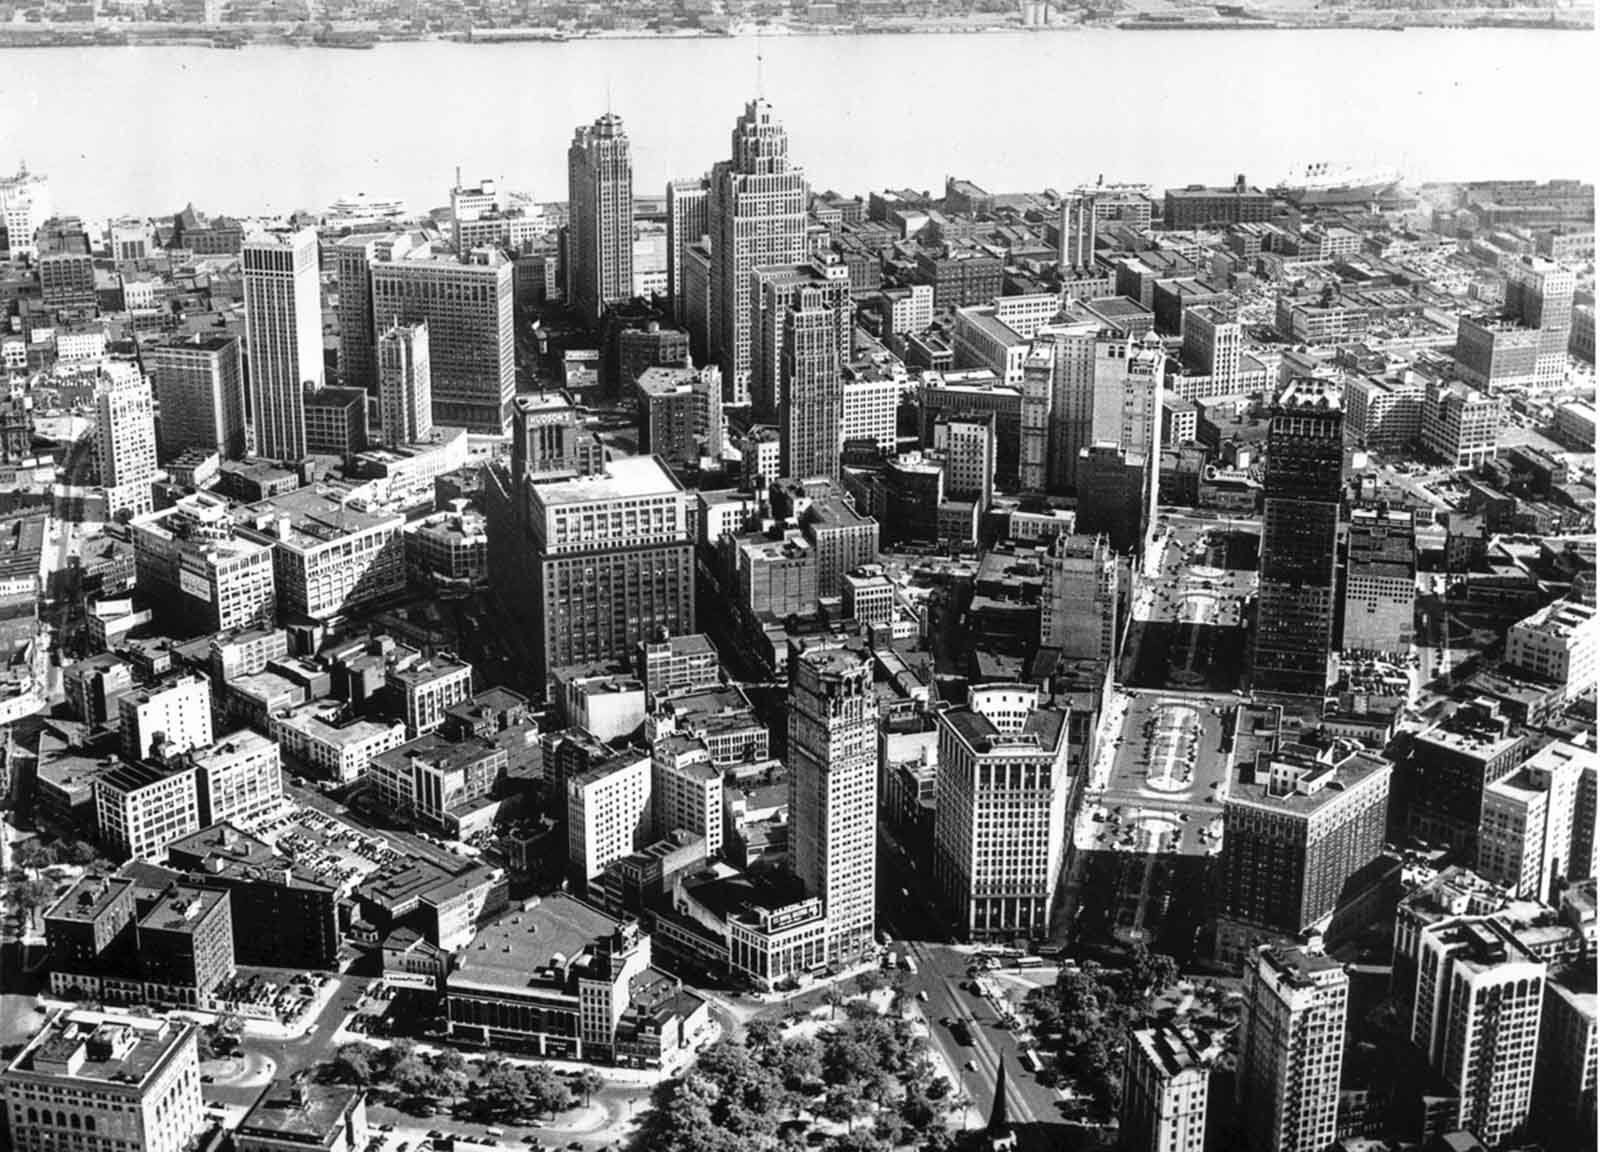 A view of Detroit, Michigan, taken by the Ford Motor Company's advertising blimp on July 15, 1947.